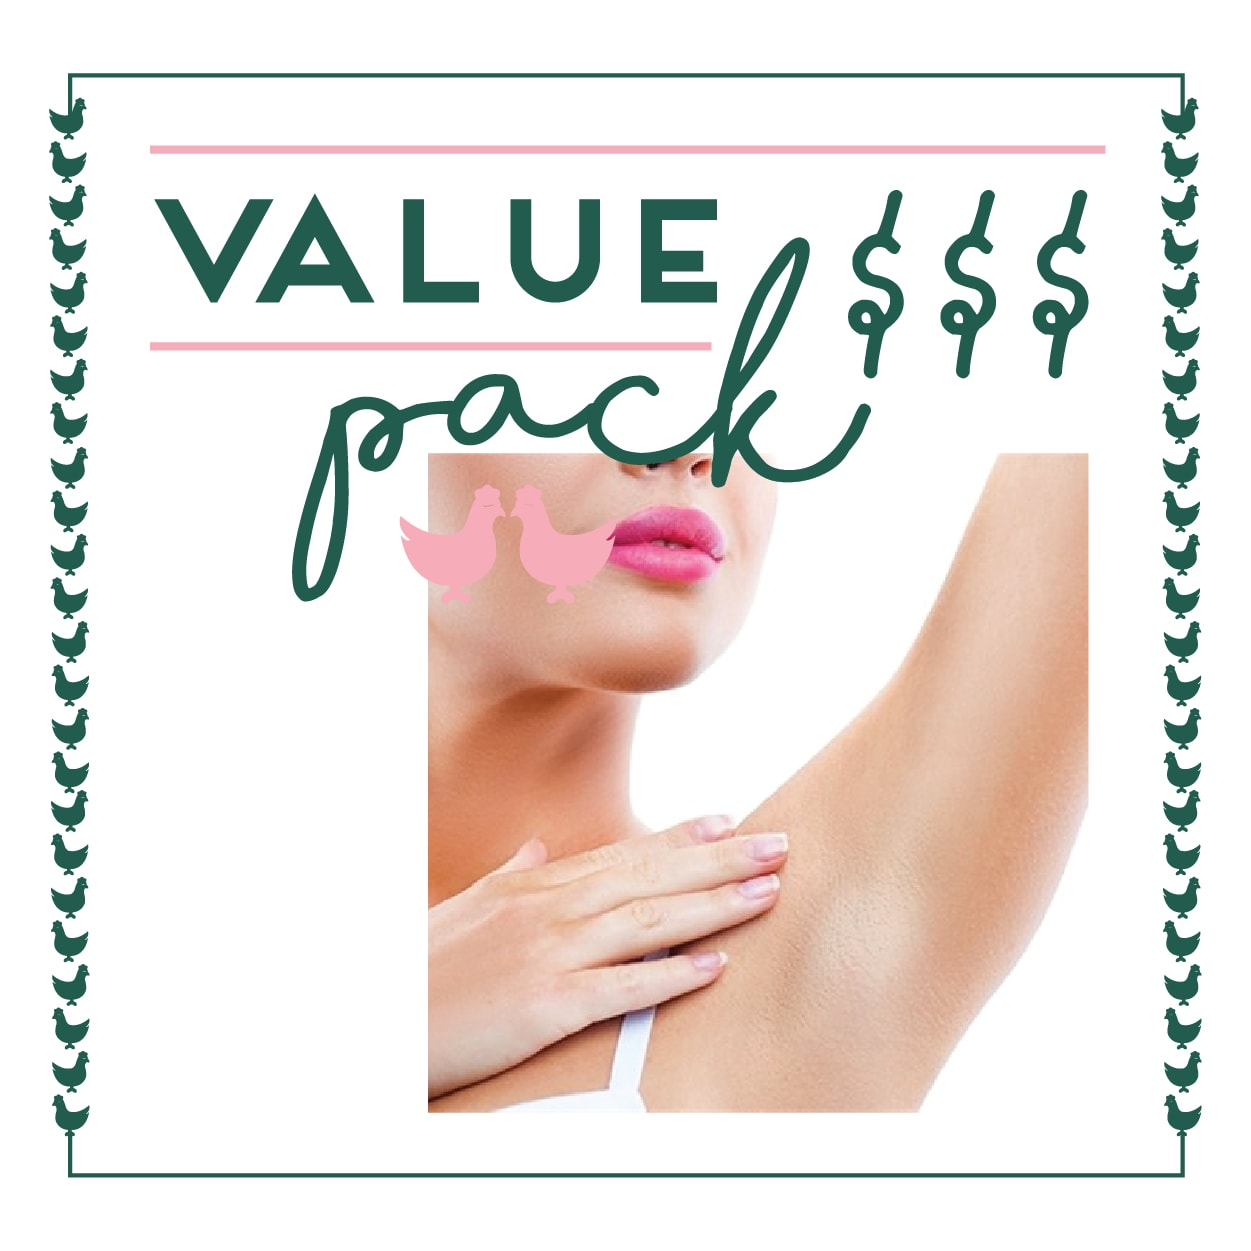 Underarms Laser - 6 Session Value Pack